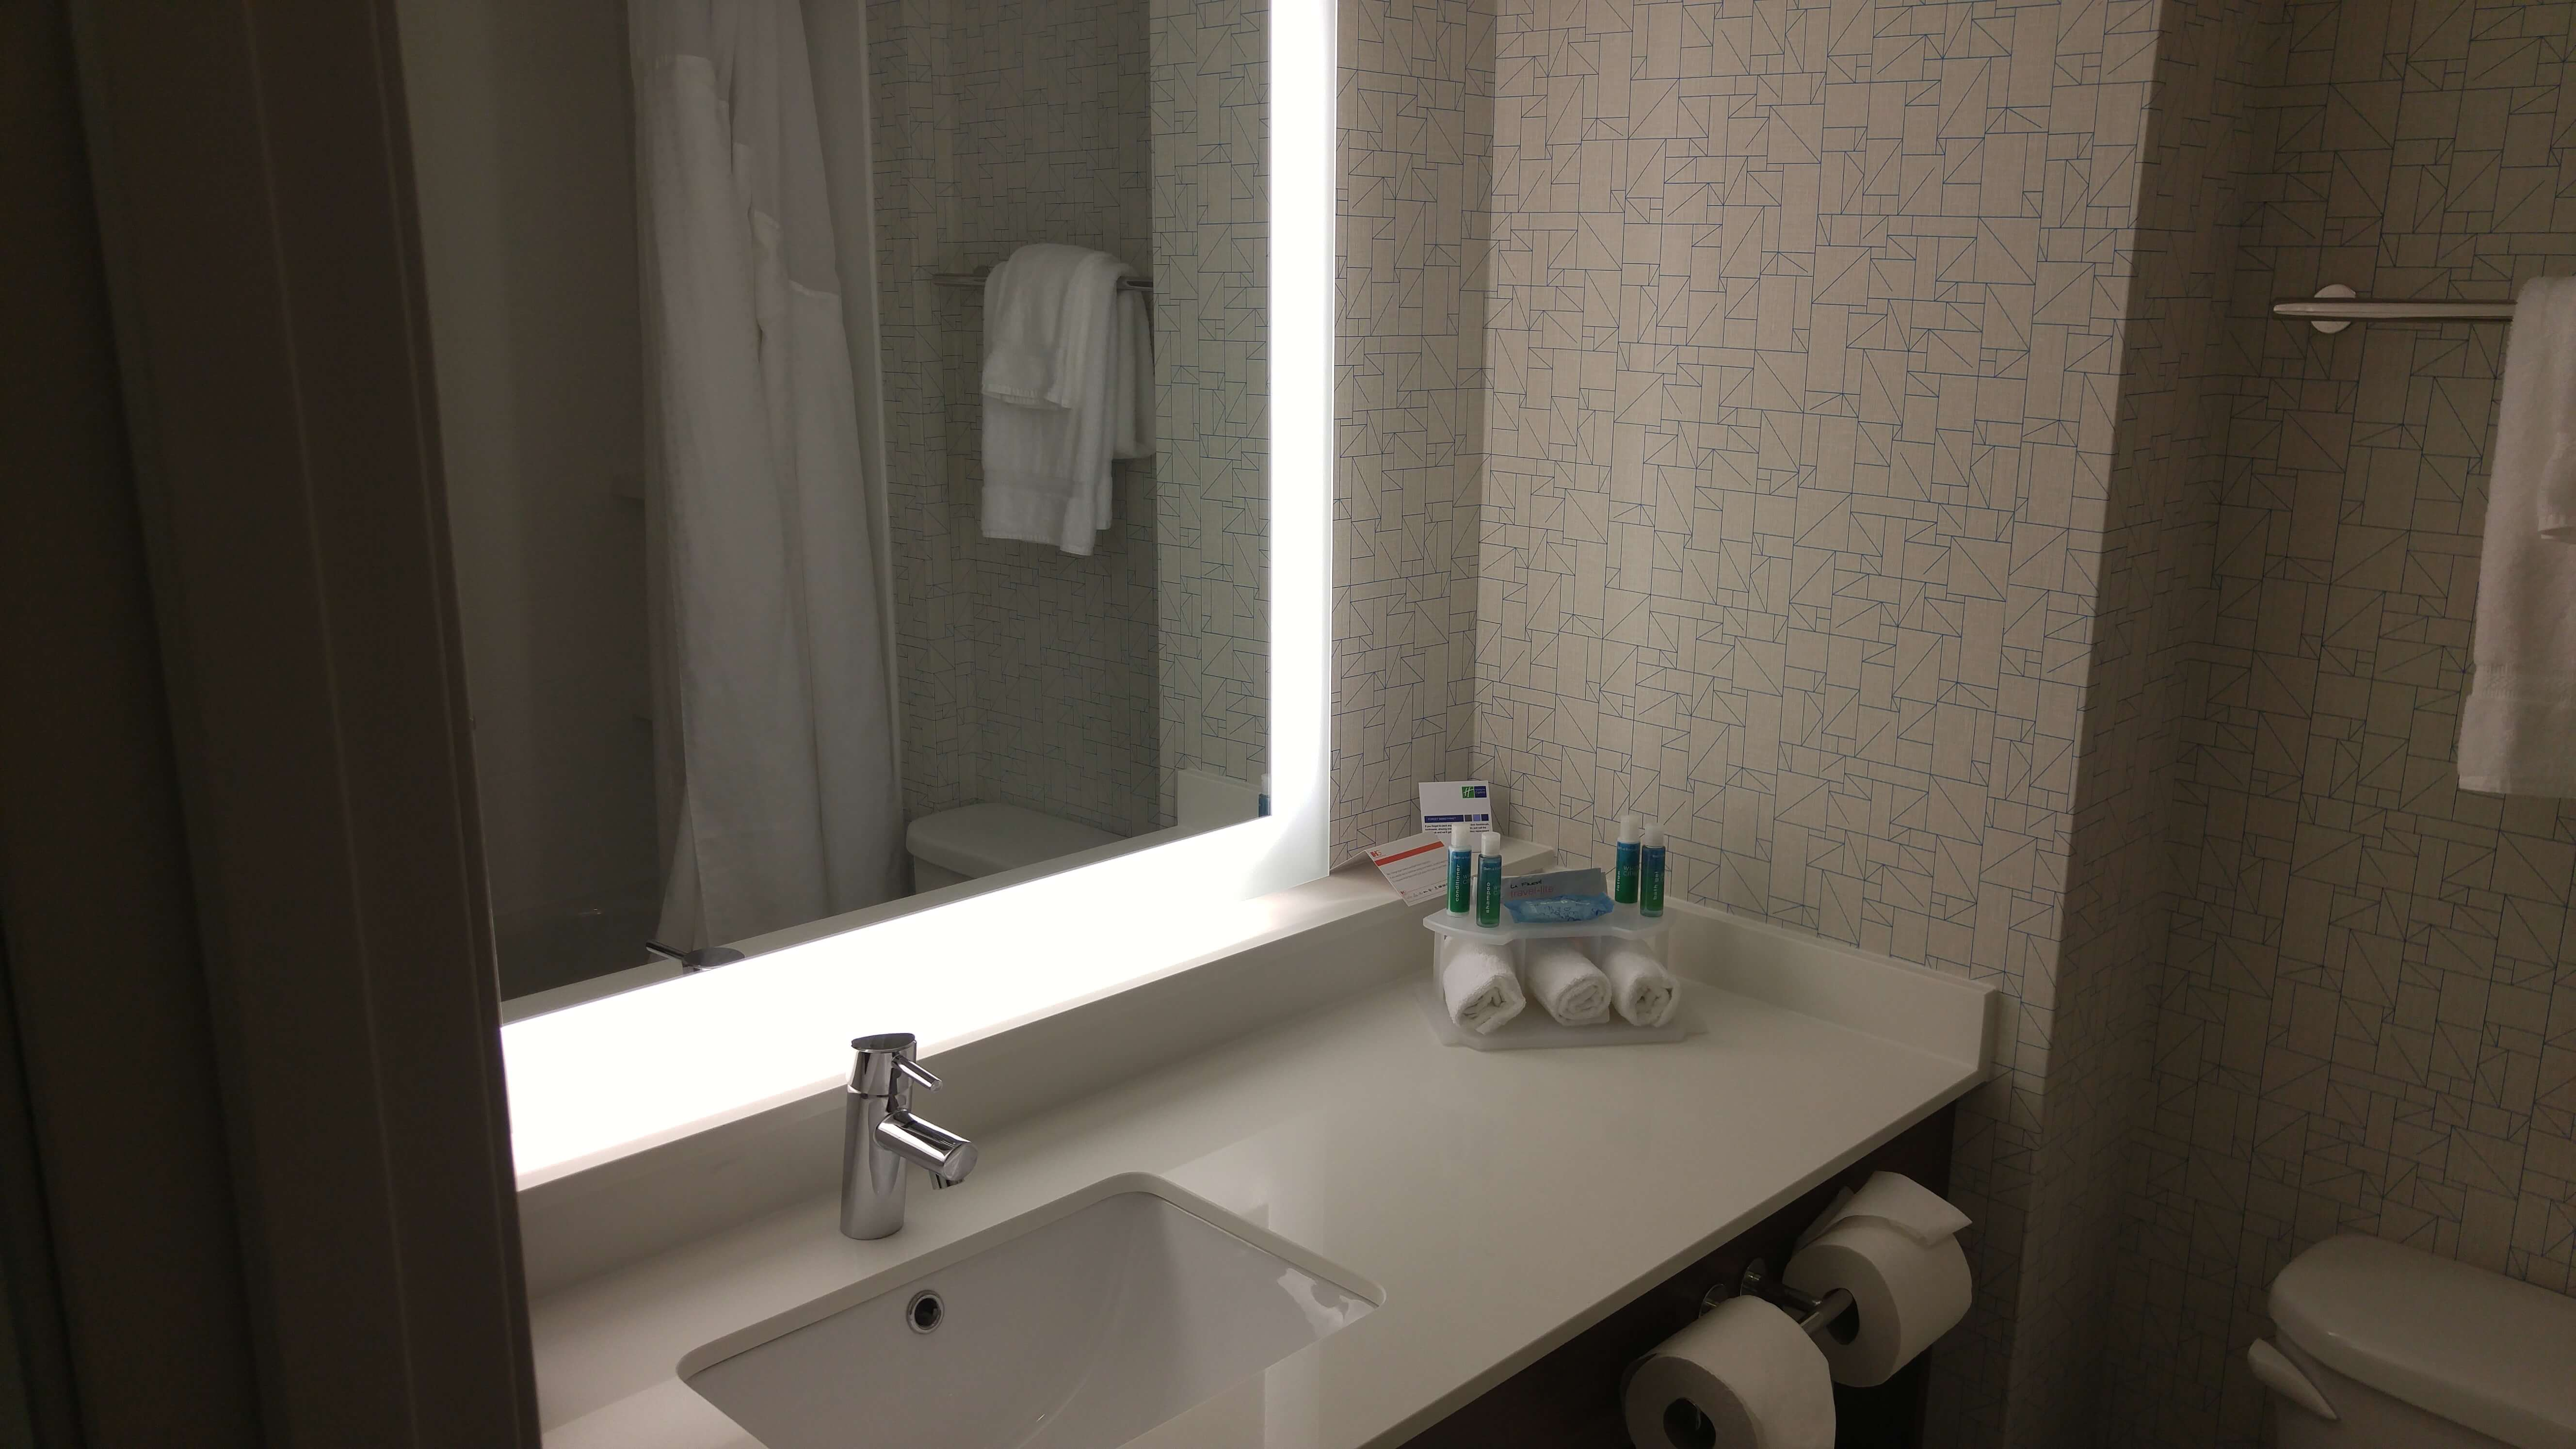 Holiday Inn Bathroom Bathroom Design Ideas